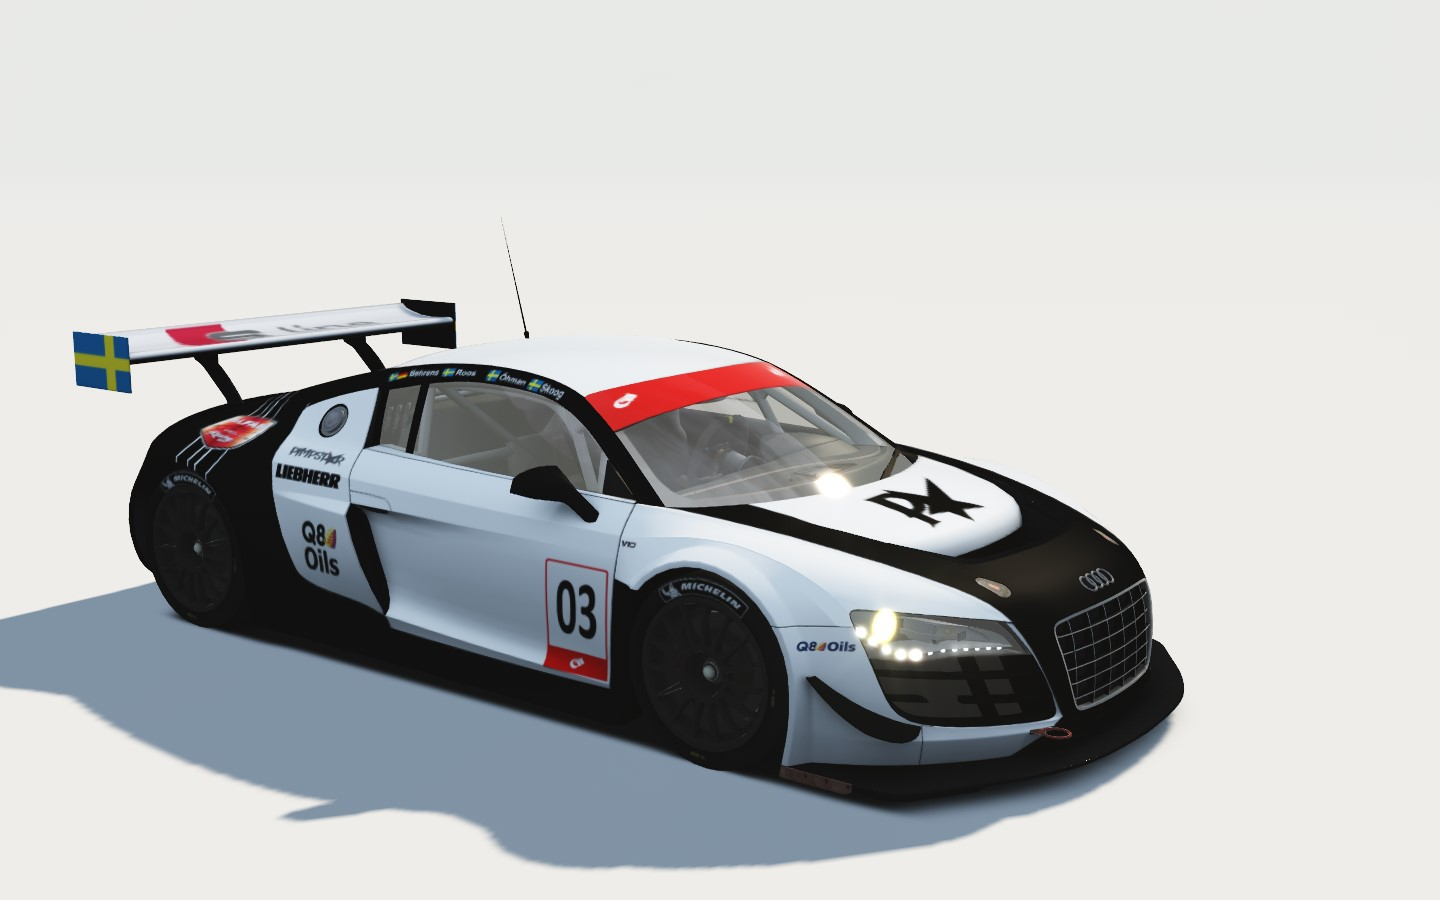 Showroom_audi_r8_lms_6-3-2015-17-38-15.jpg